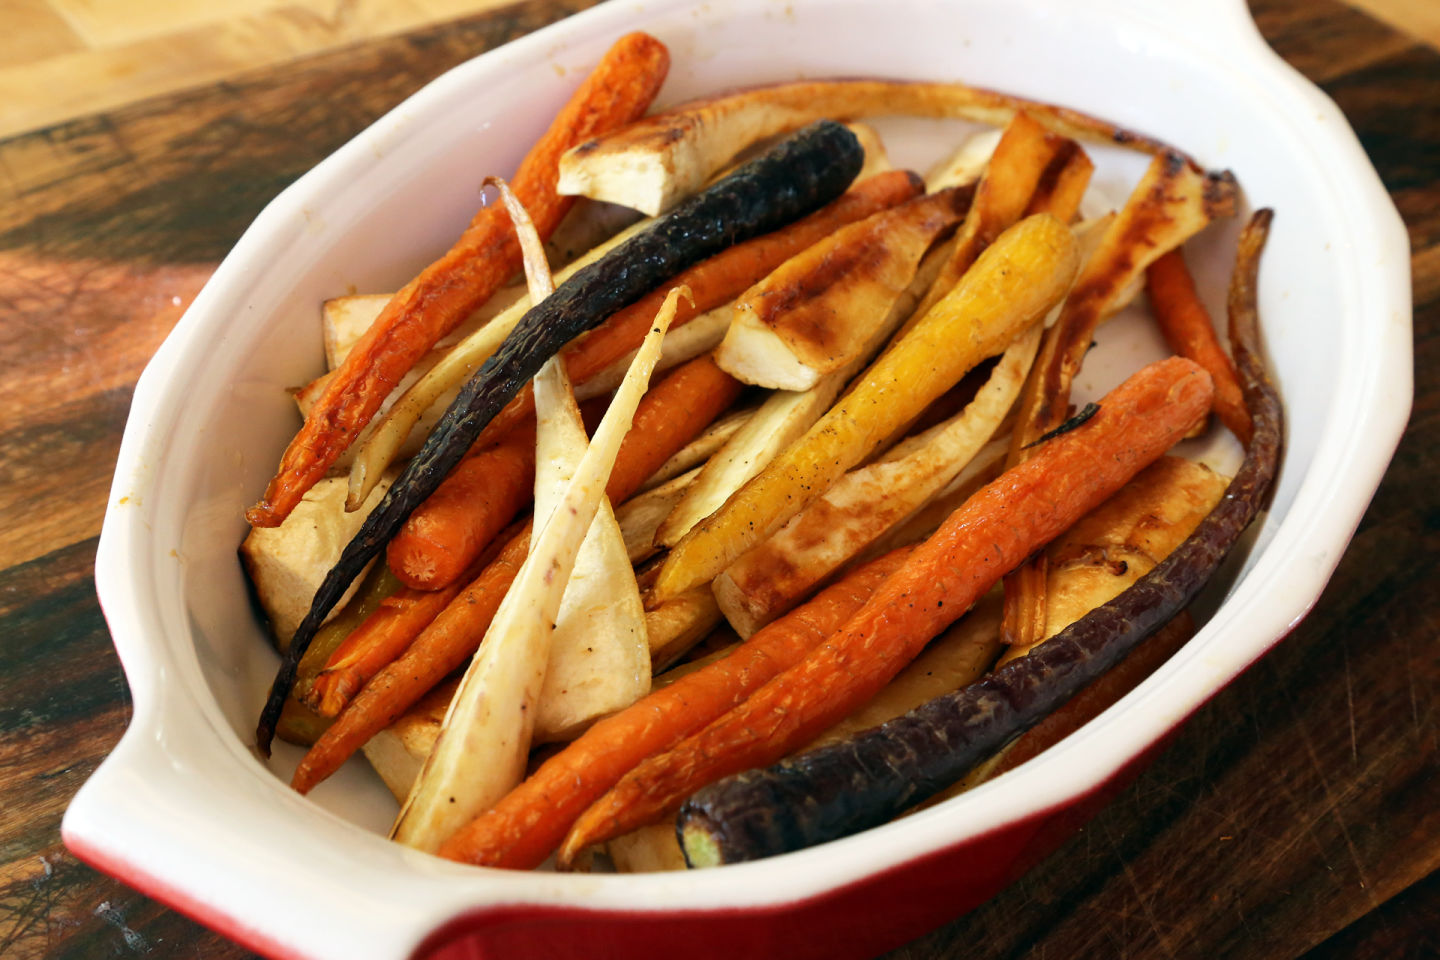 Roast Carrots and Parsnips with Honey and Thyme Wendy Goodfriend